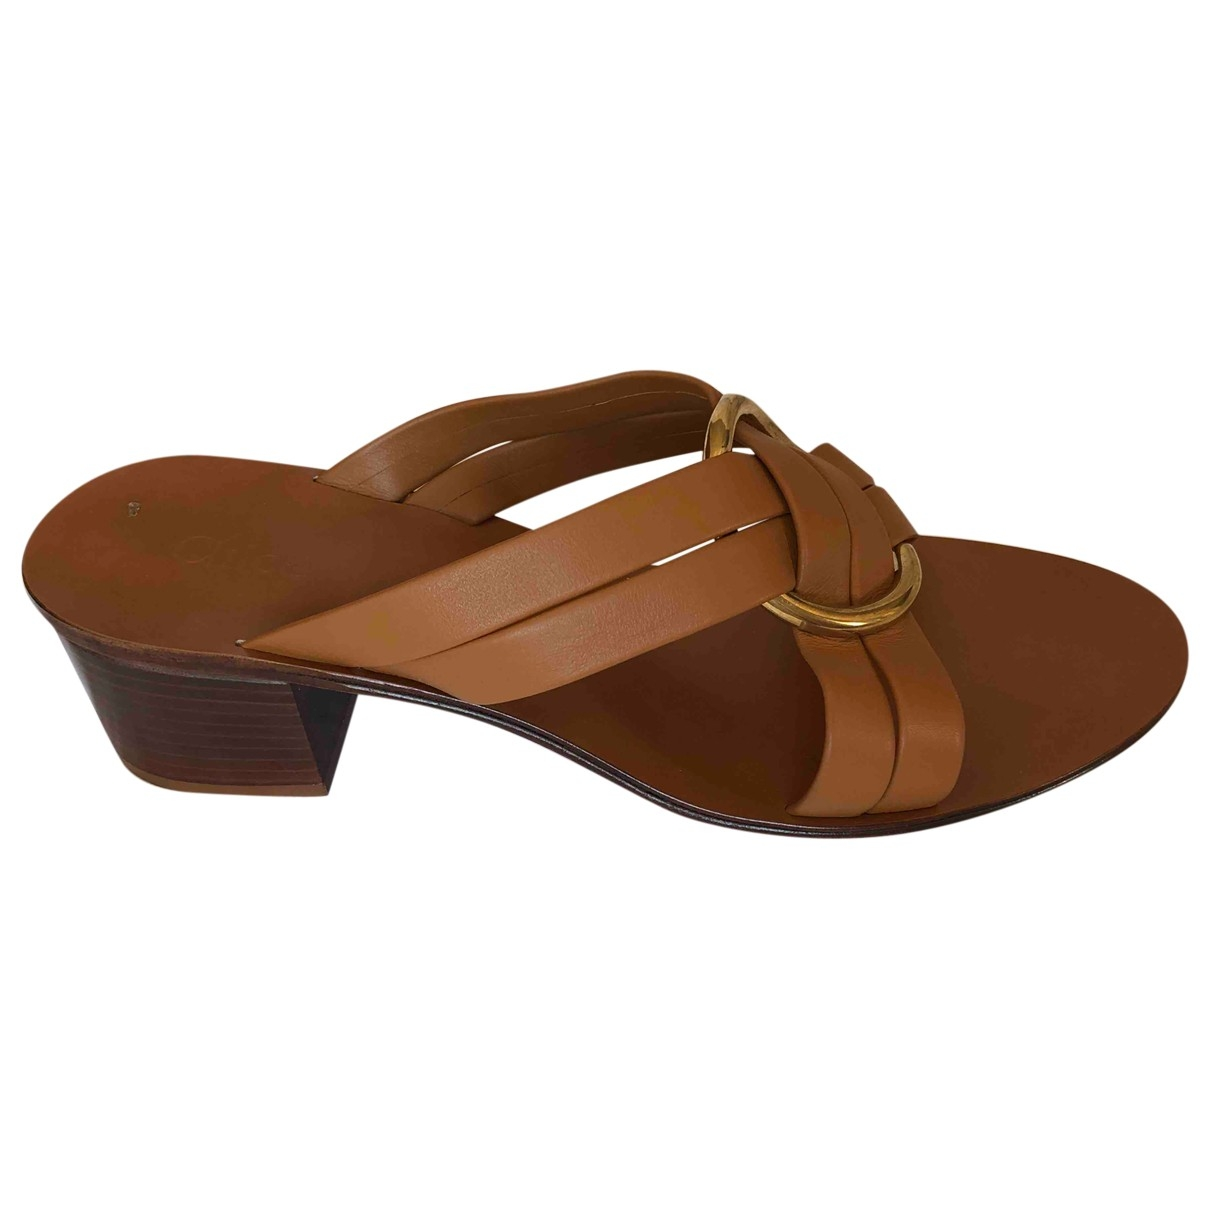 Chloé Rony Brown Leather Sandals for Women 42 EU